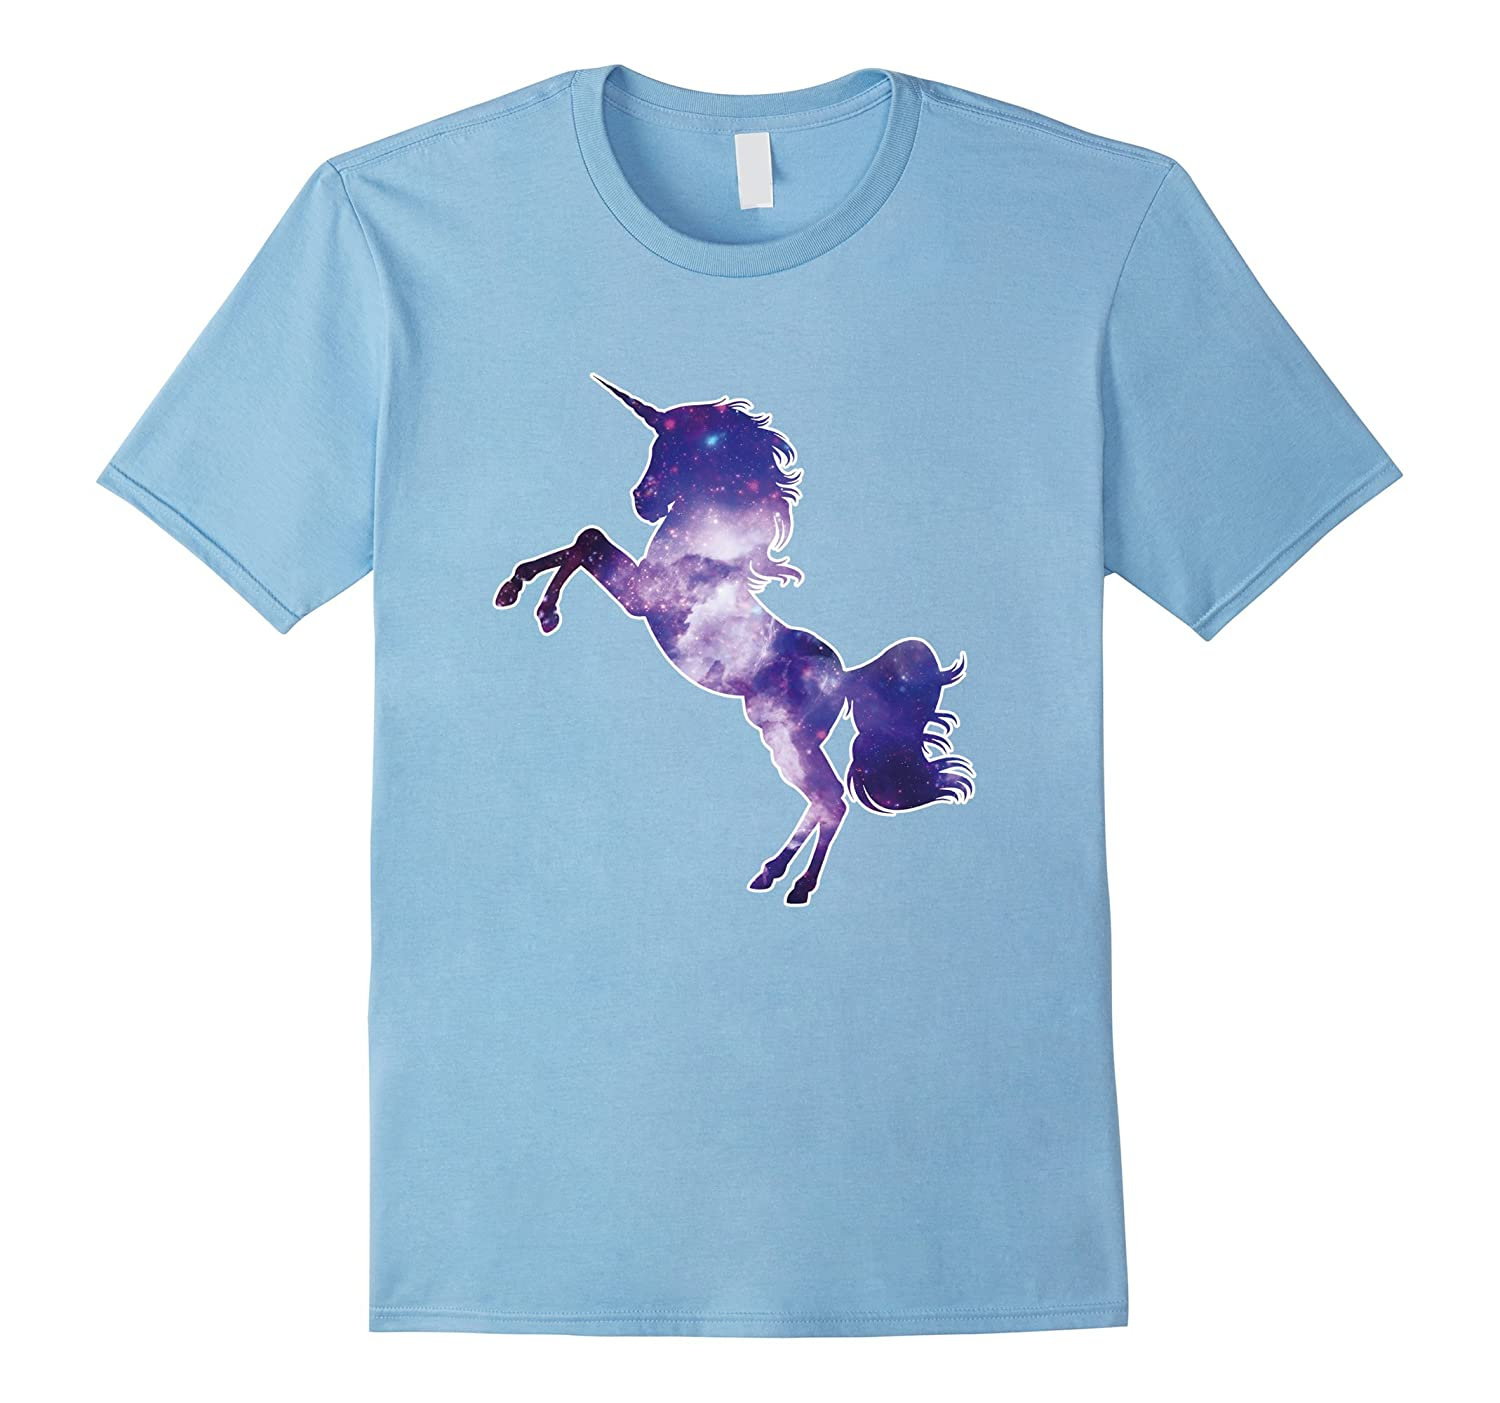 Cool Unicorn T-shirt for kids mums dads boys and girls-TH